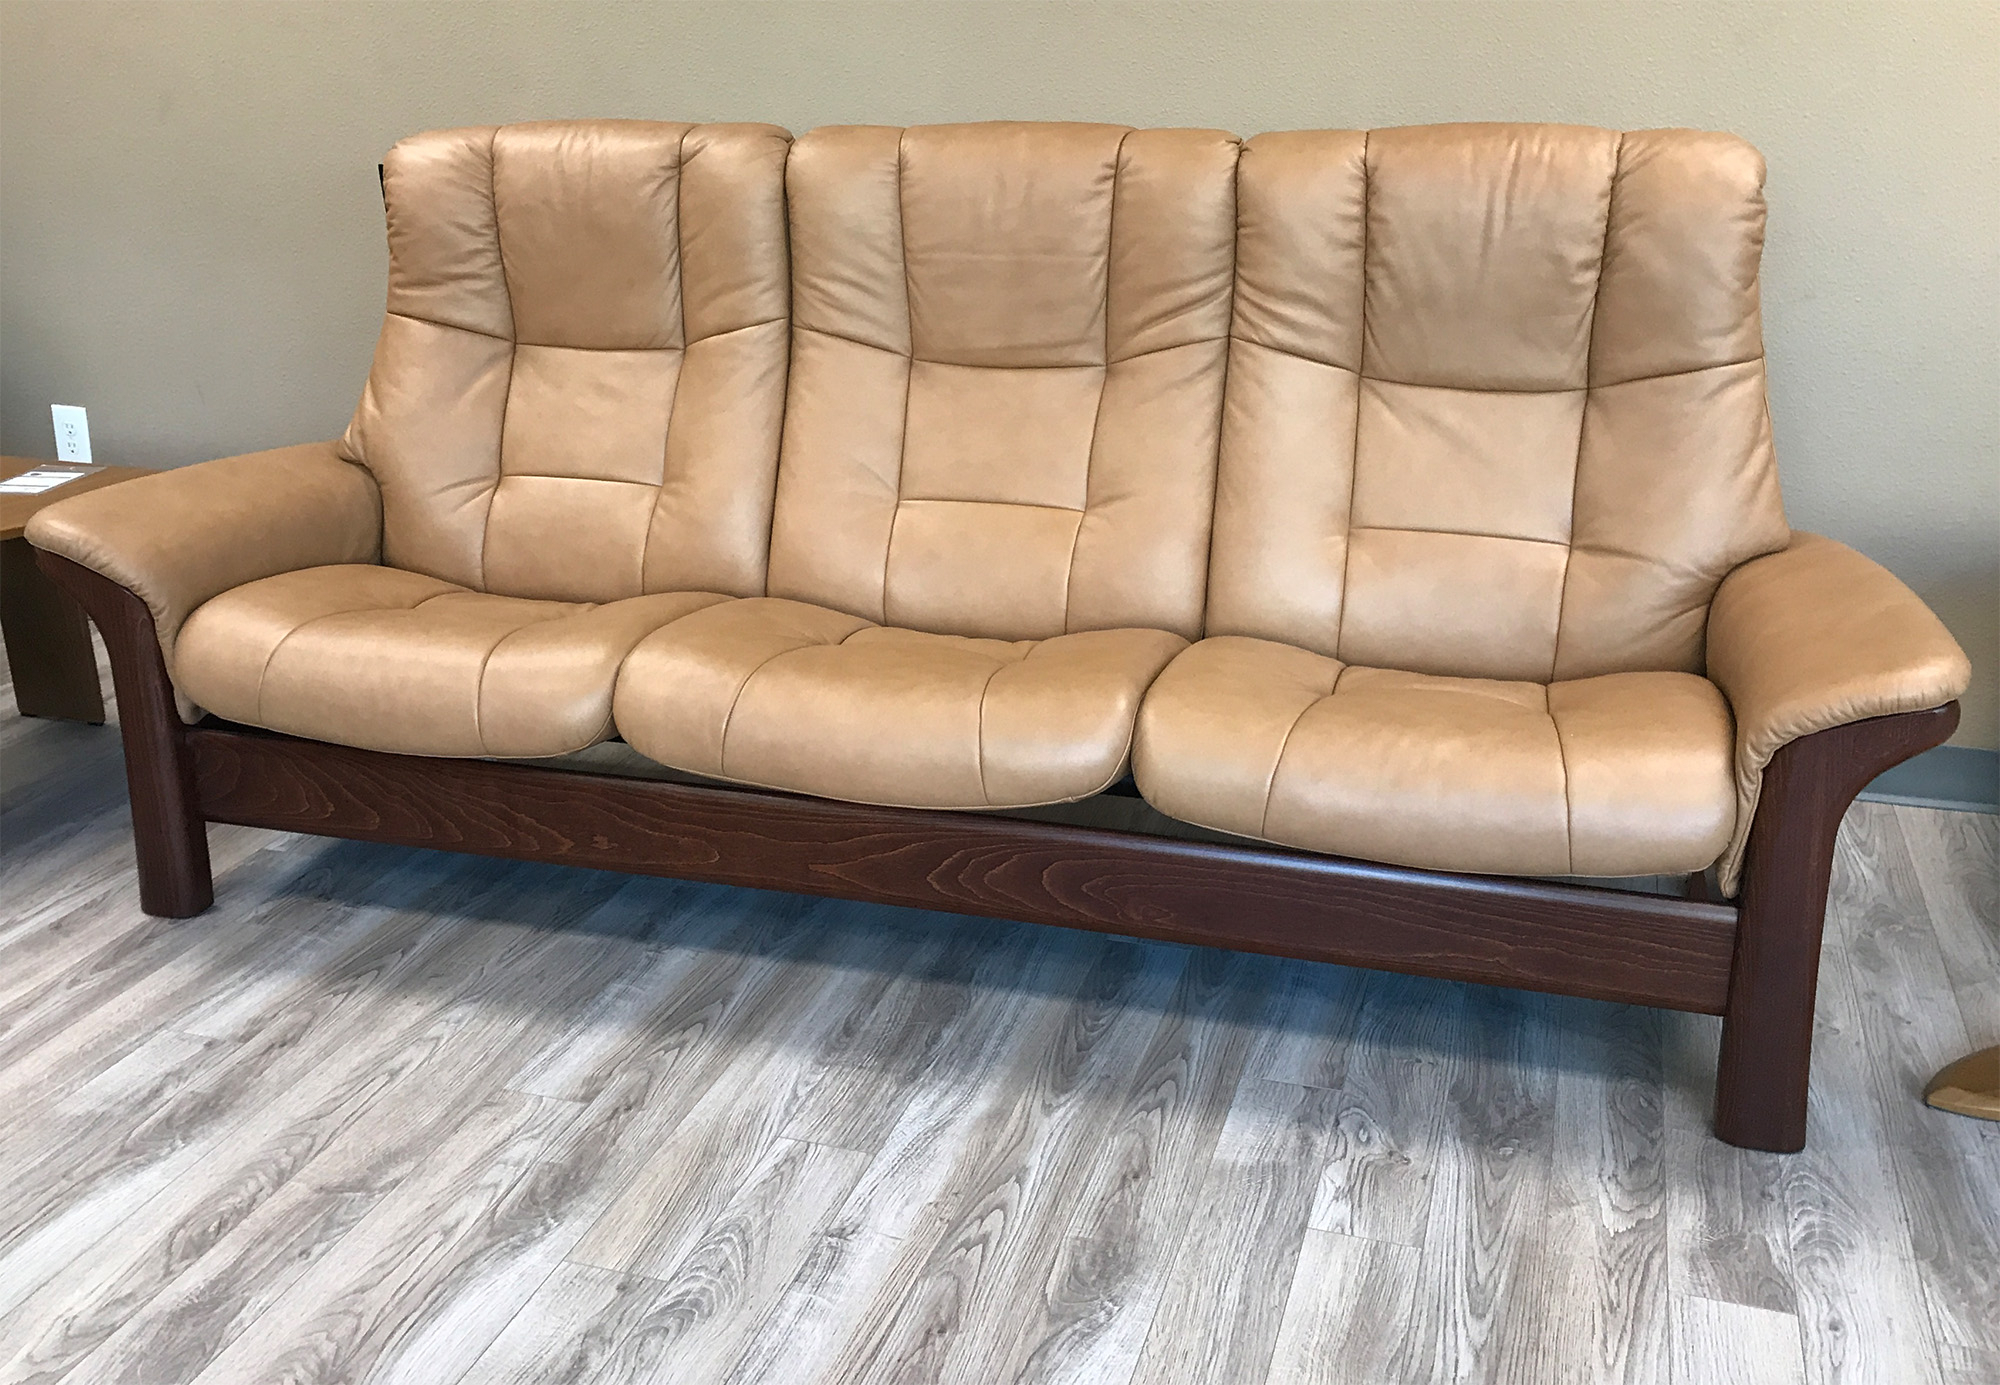 Stressless Buckingham 3 Seat High Back Sofa Paloma Taupe For High Back Sofas And Chairs (View 8 of 15)